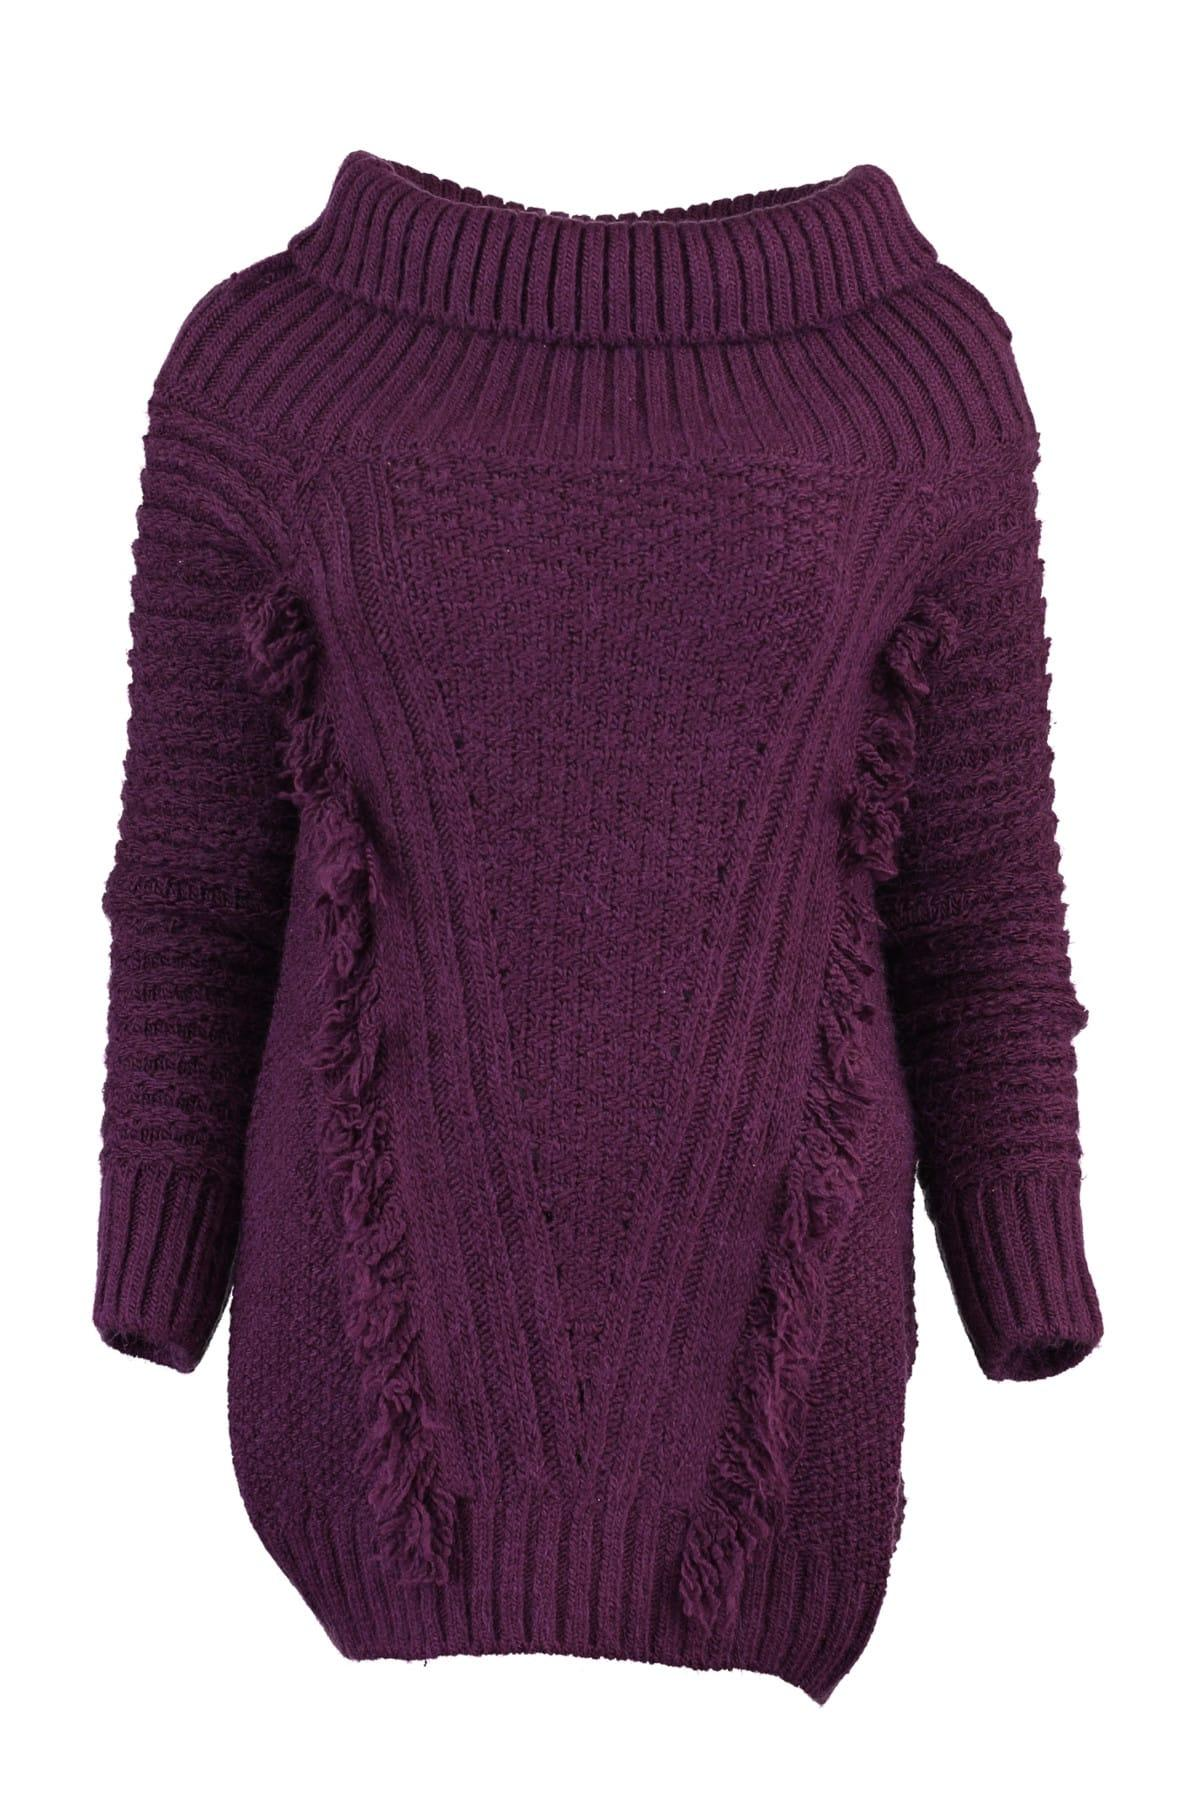 WOMEN Purple Tassels Sweater Sweater TWOAW20NV0010